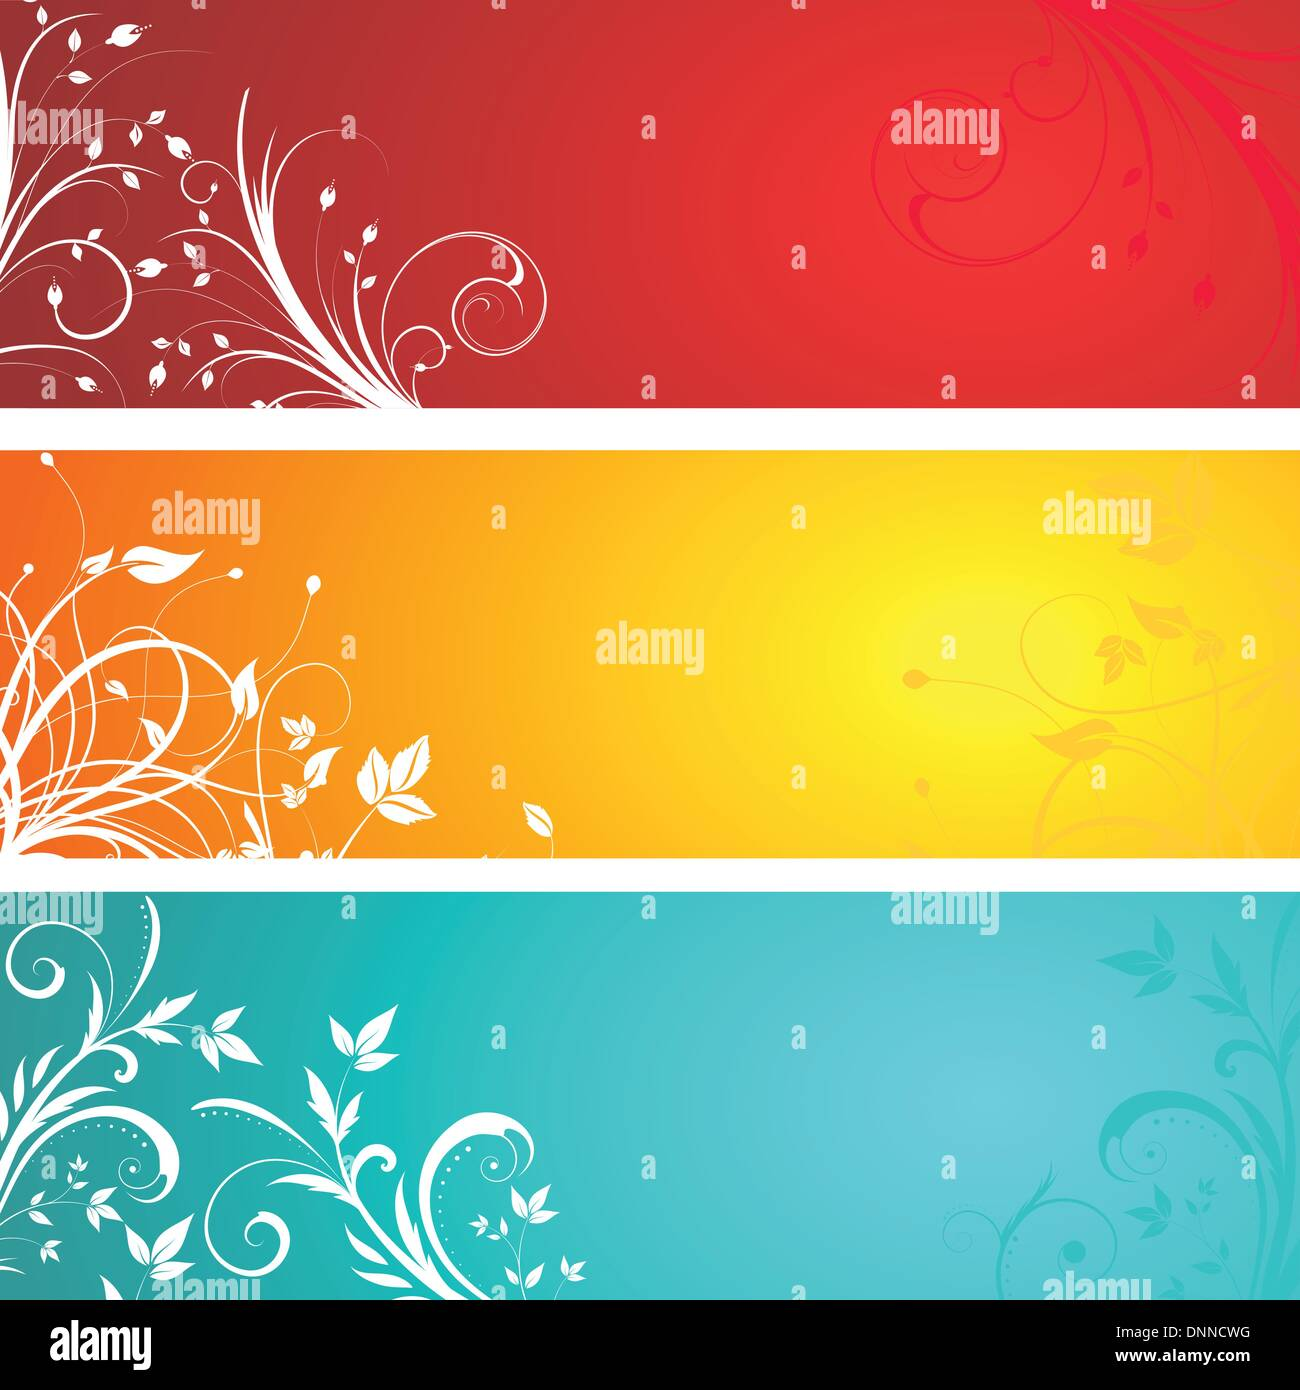 Various different designed floral panels - Stock Image